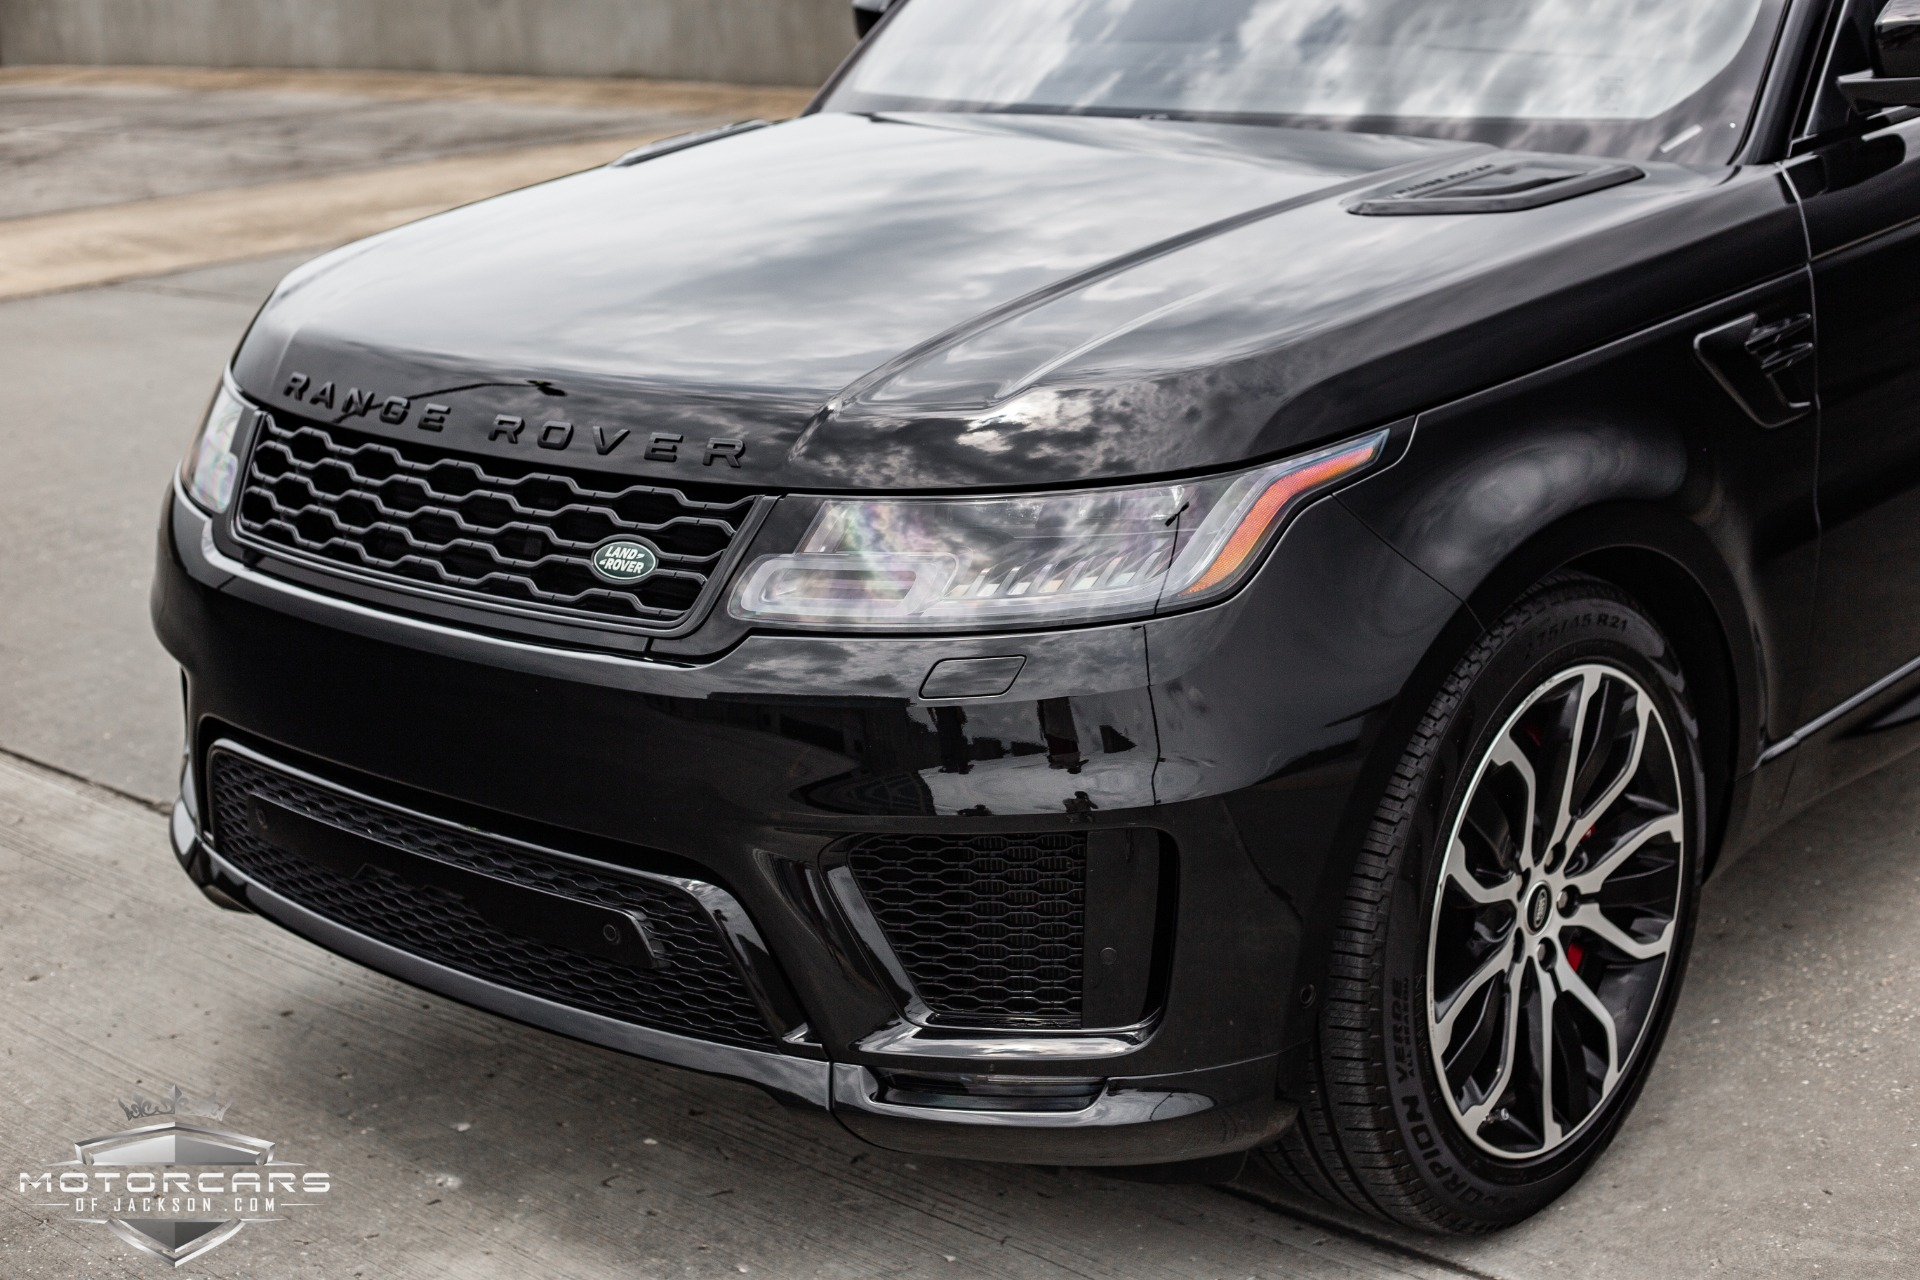 Used-2018-Land-Rover-Range-Rover-Sport-HSE-Dynamic-Jackson-MS